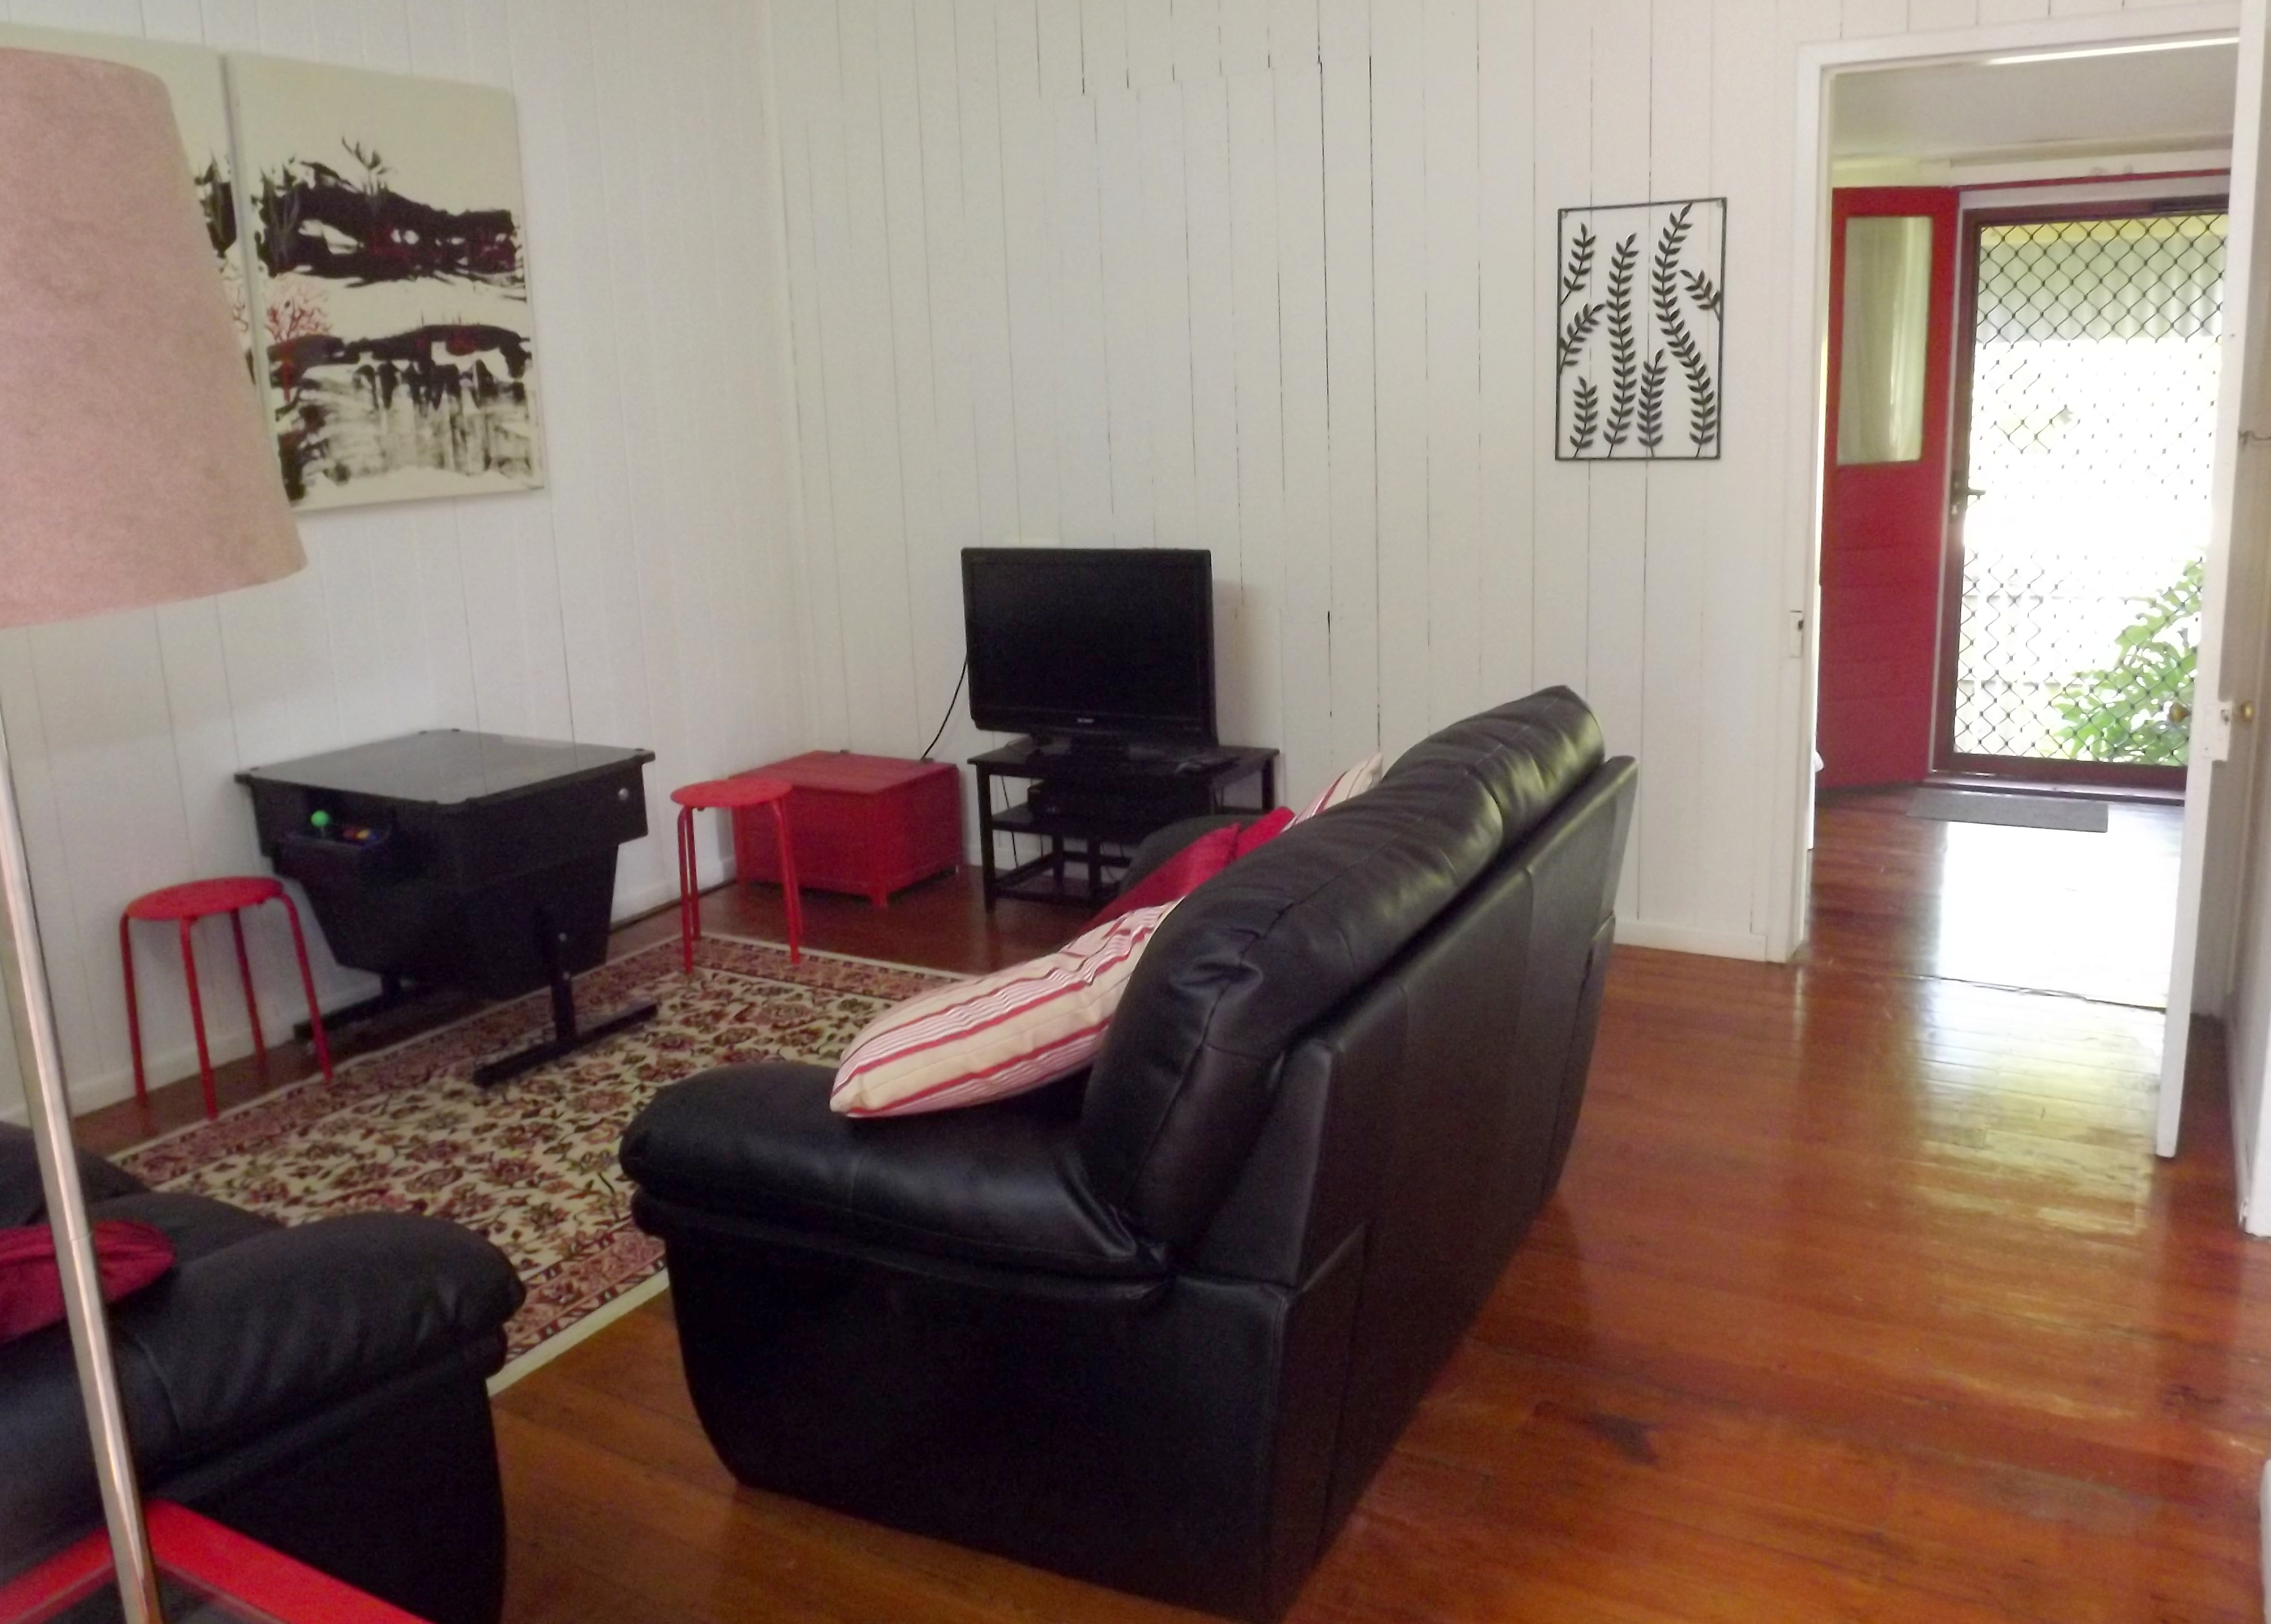 Lounge room and front door gallery image